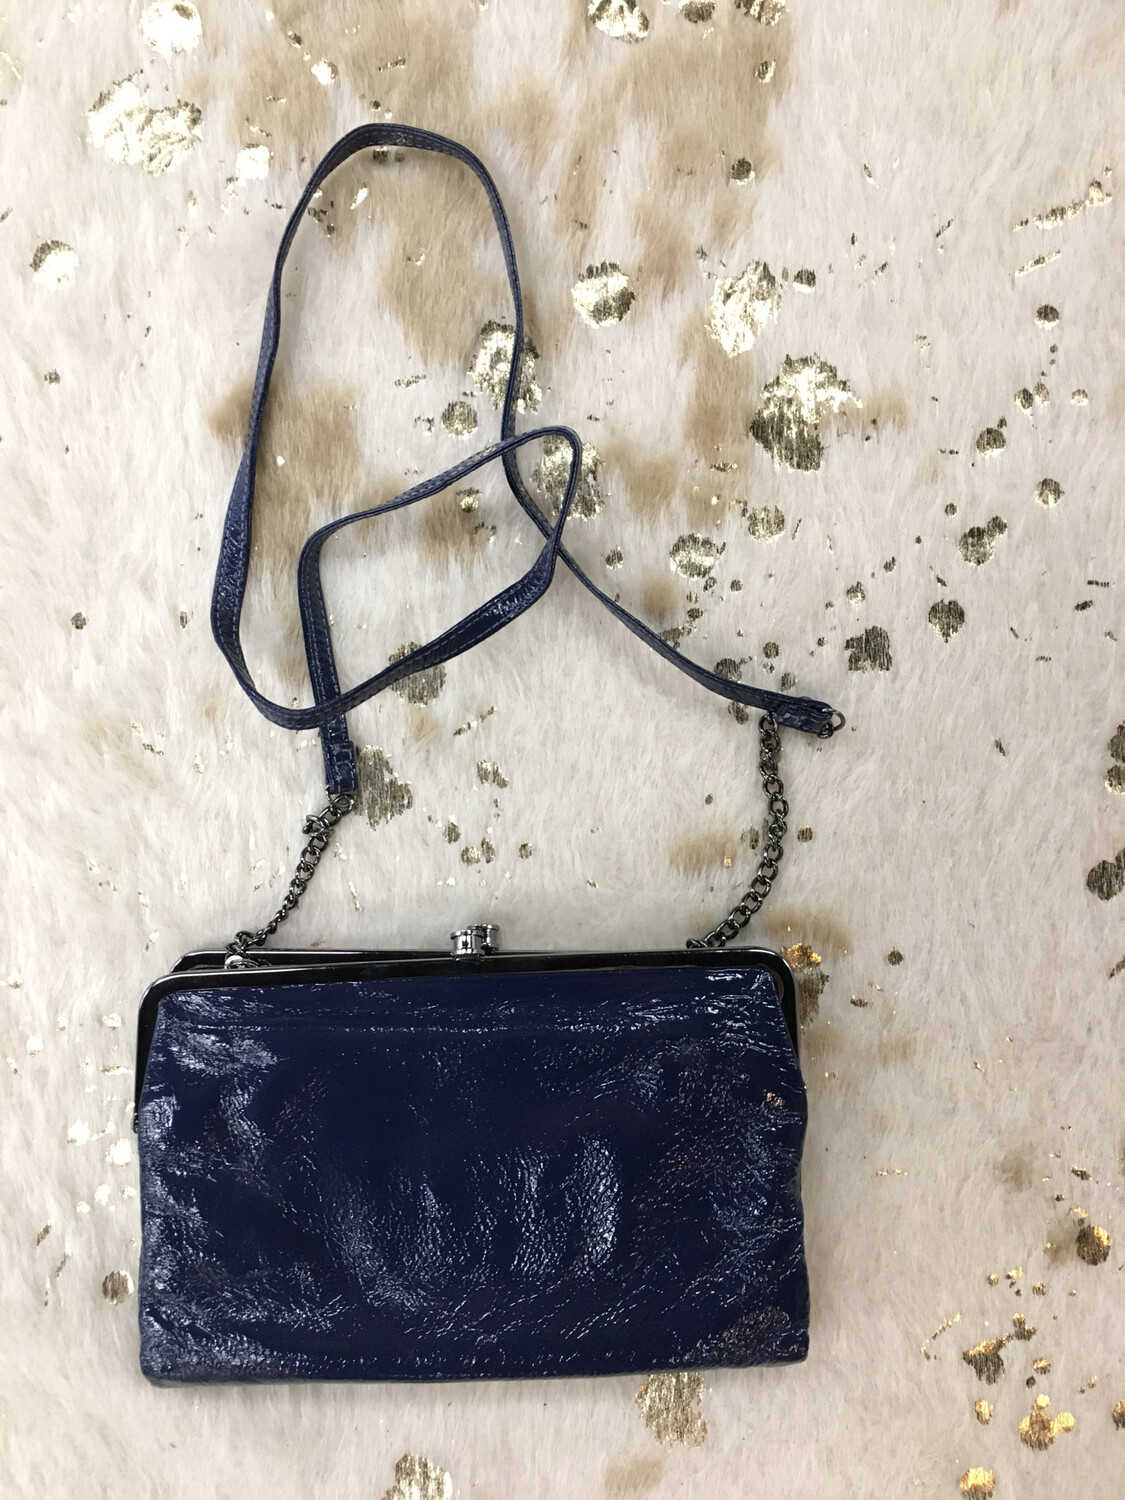 HOBO Blue Clutch Wallet with Strap